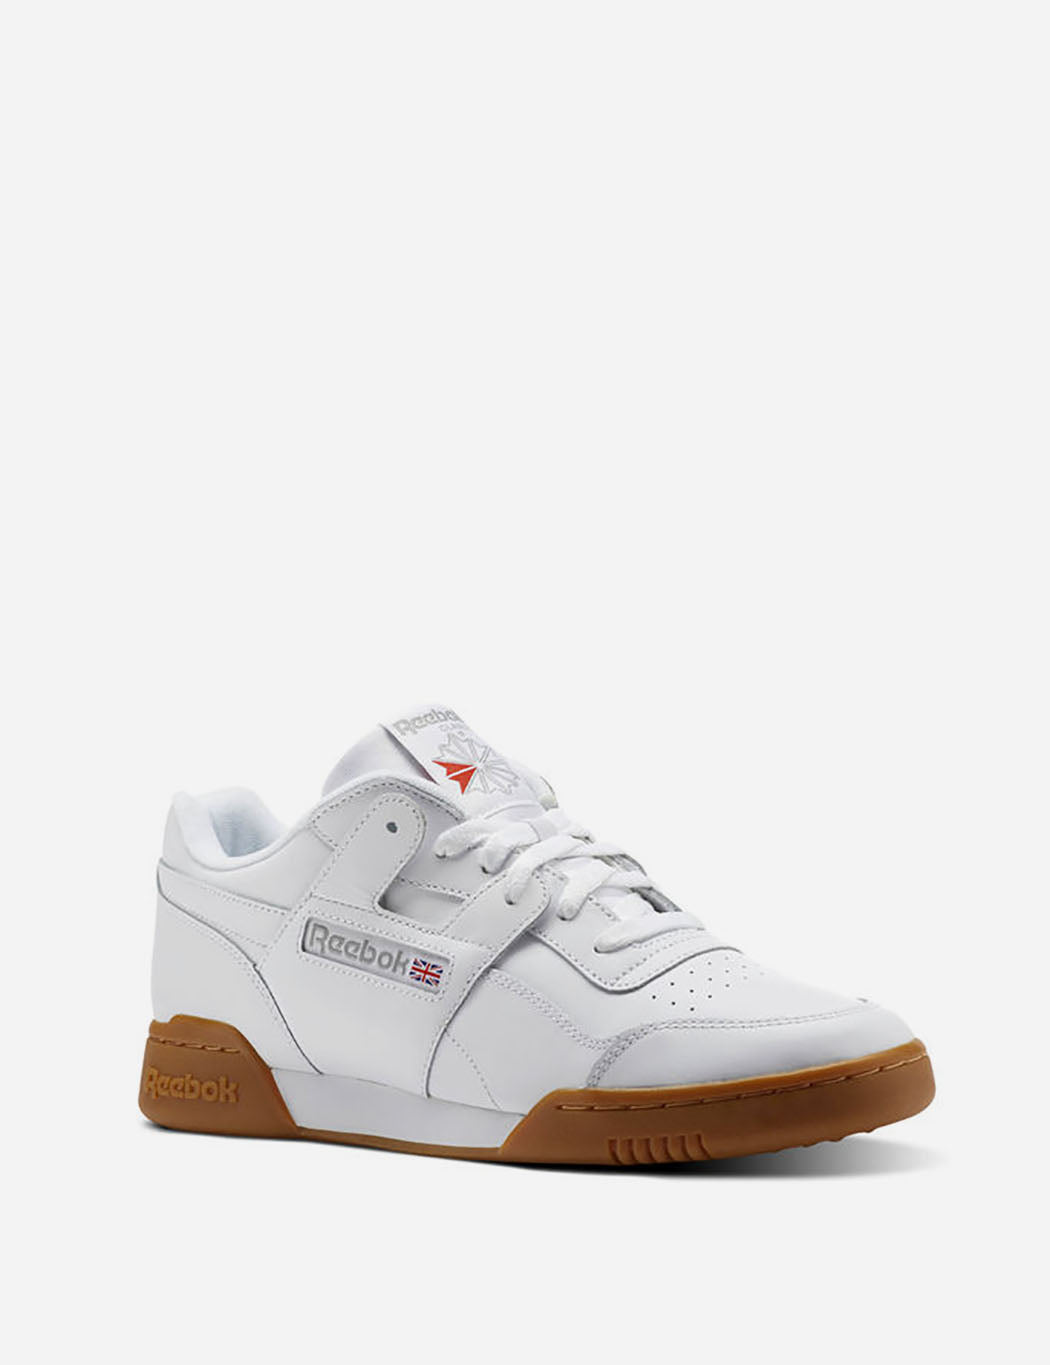 b95fc1a0cb3 ... Reebok Workout Plus Gum Sole (CN2126) - White Carbon Classic Red ...